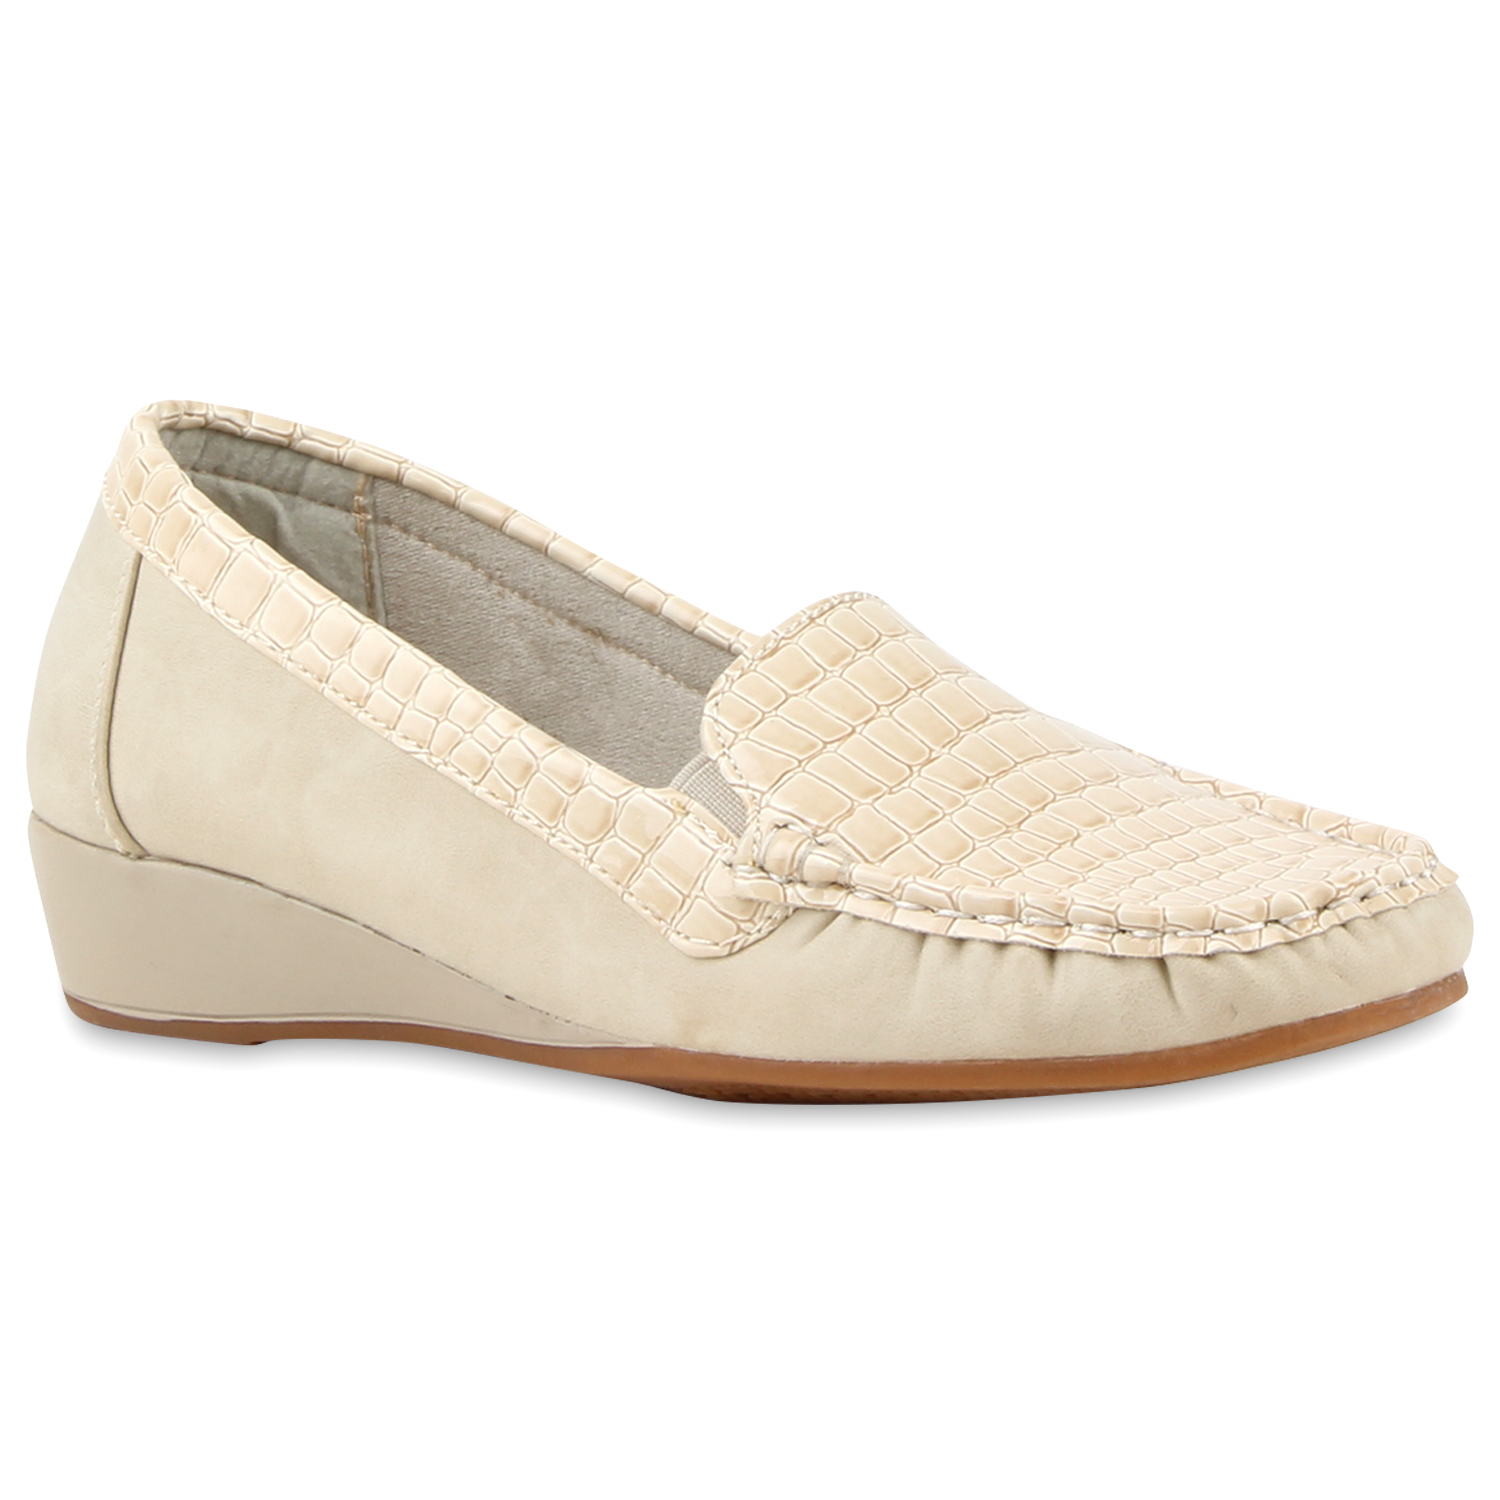 Damen Slippers Keilslippers - Creme